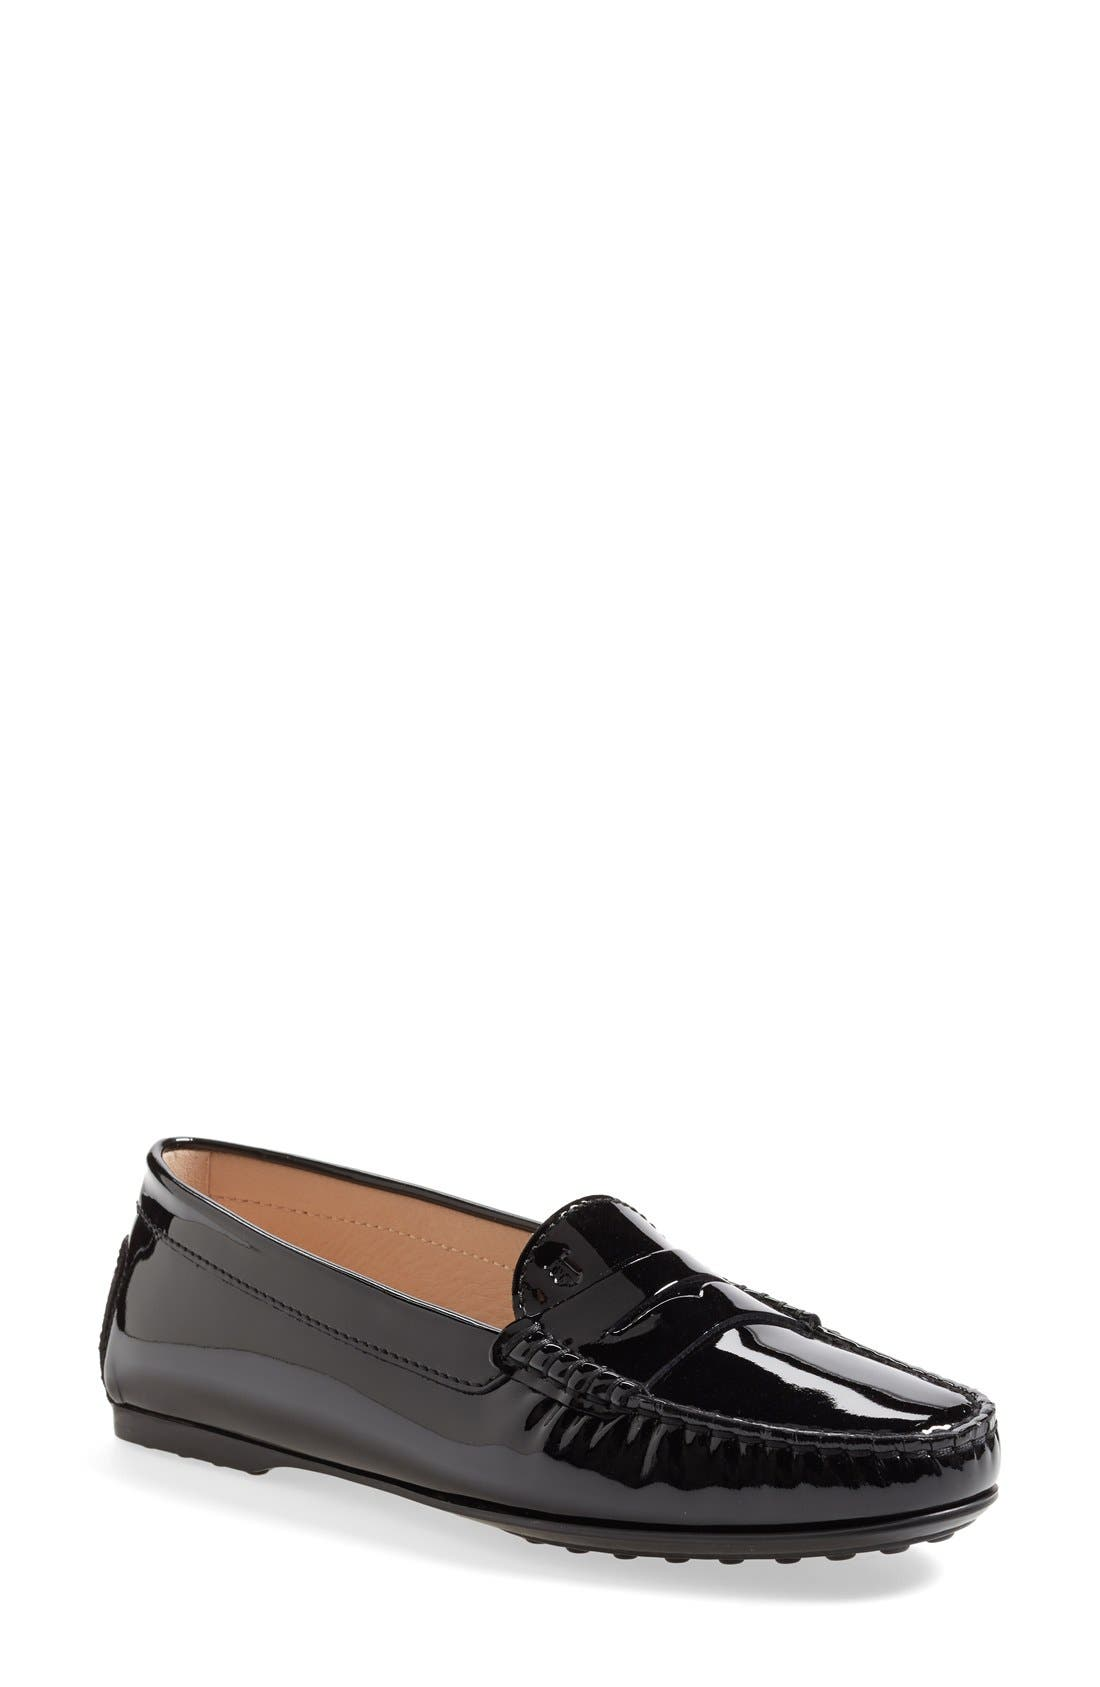 Main Image - Tod's Patent Leather Penny Loafer (Women)